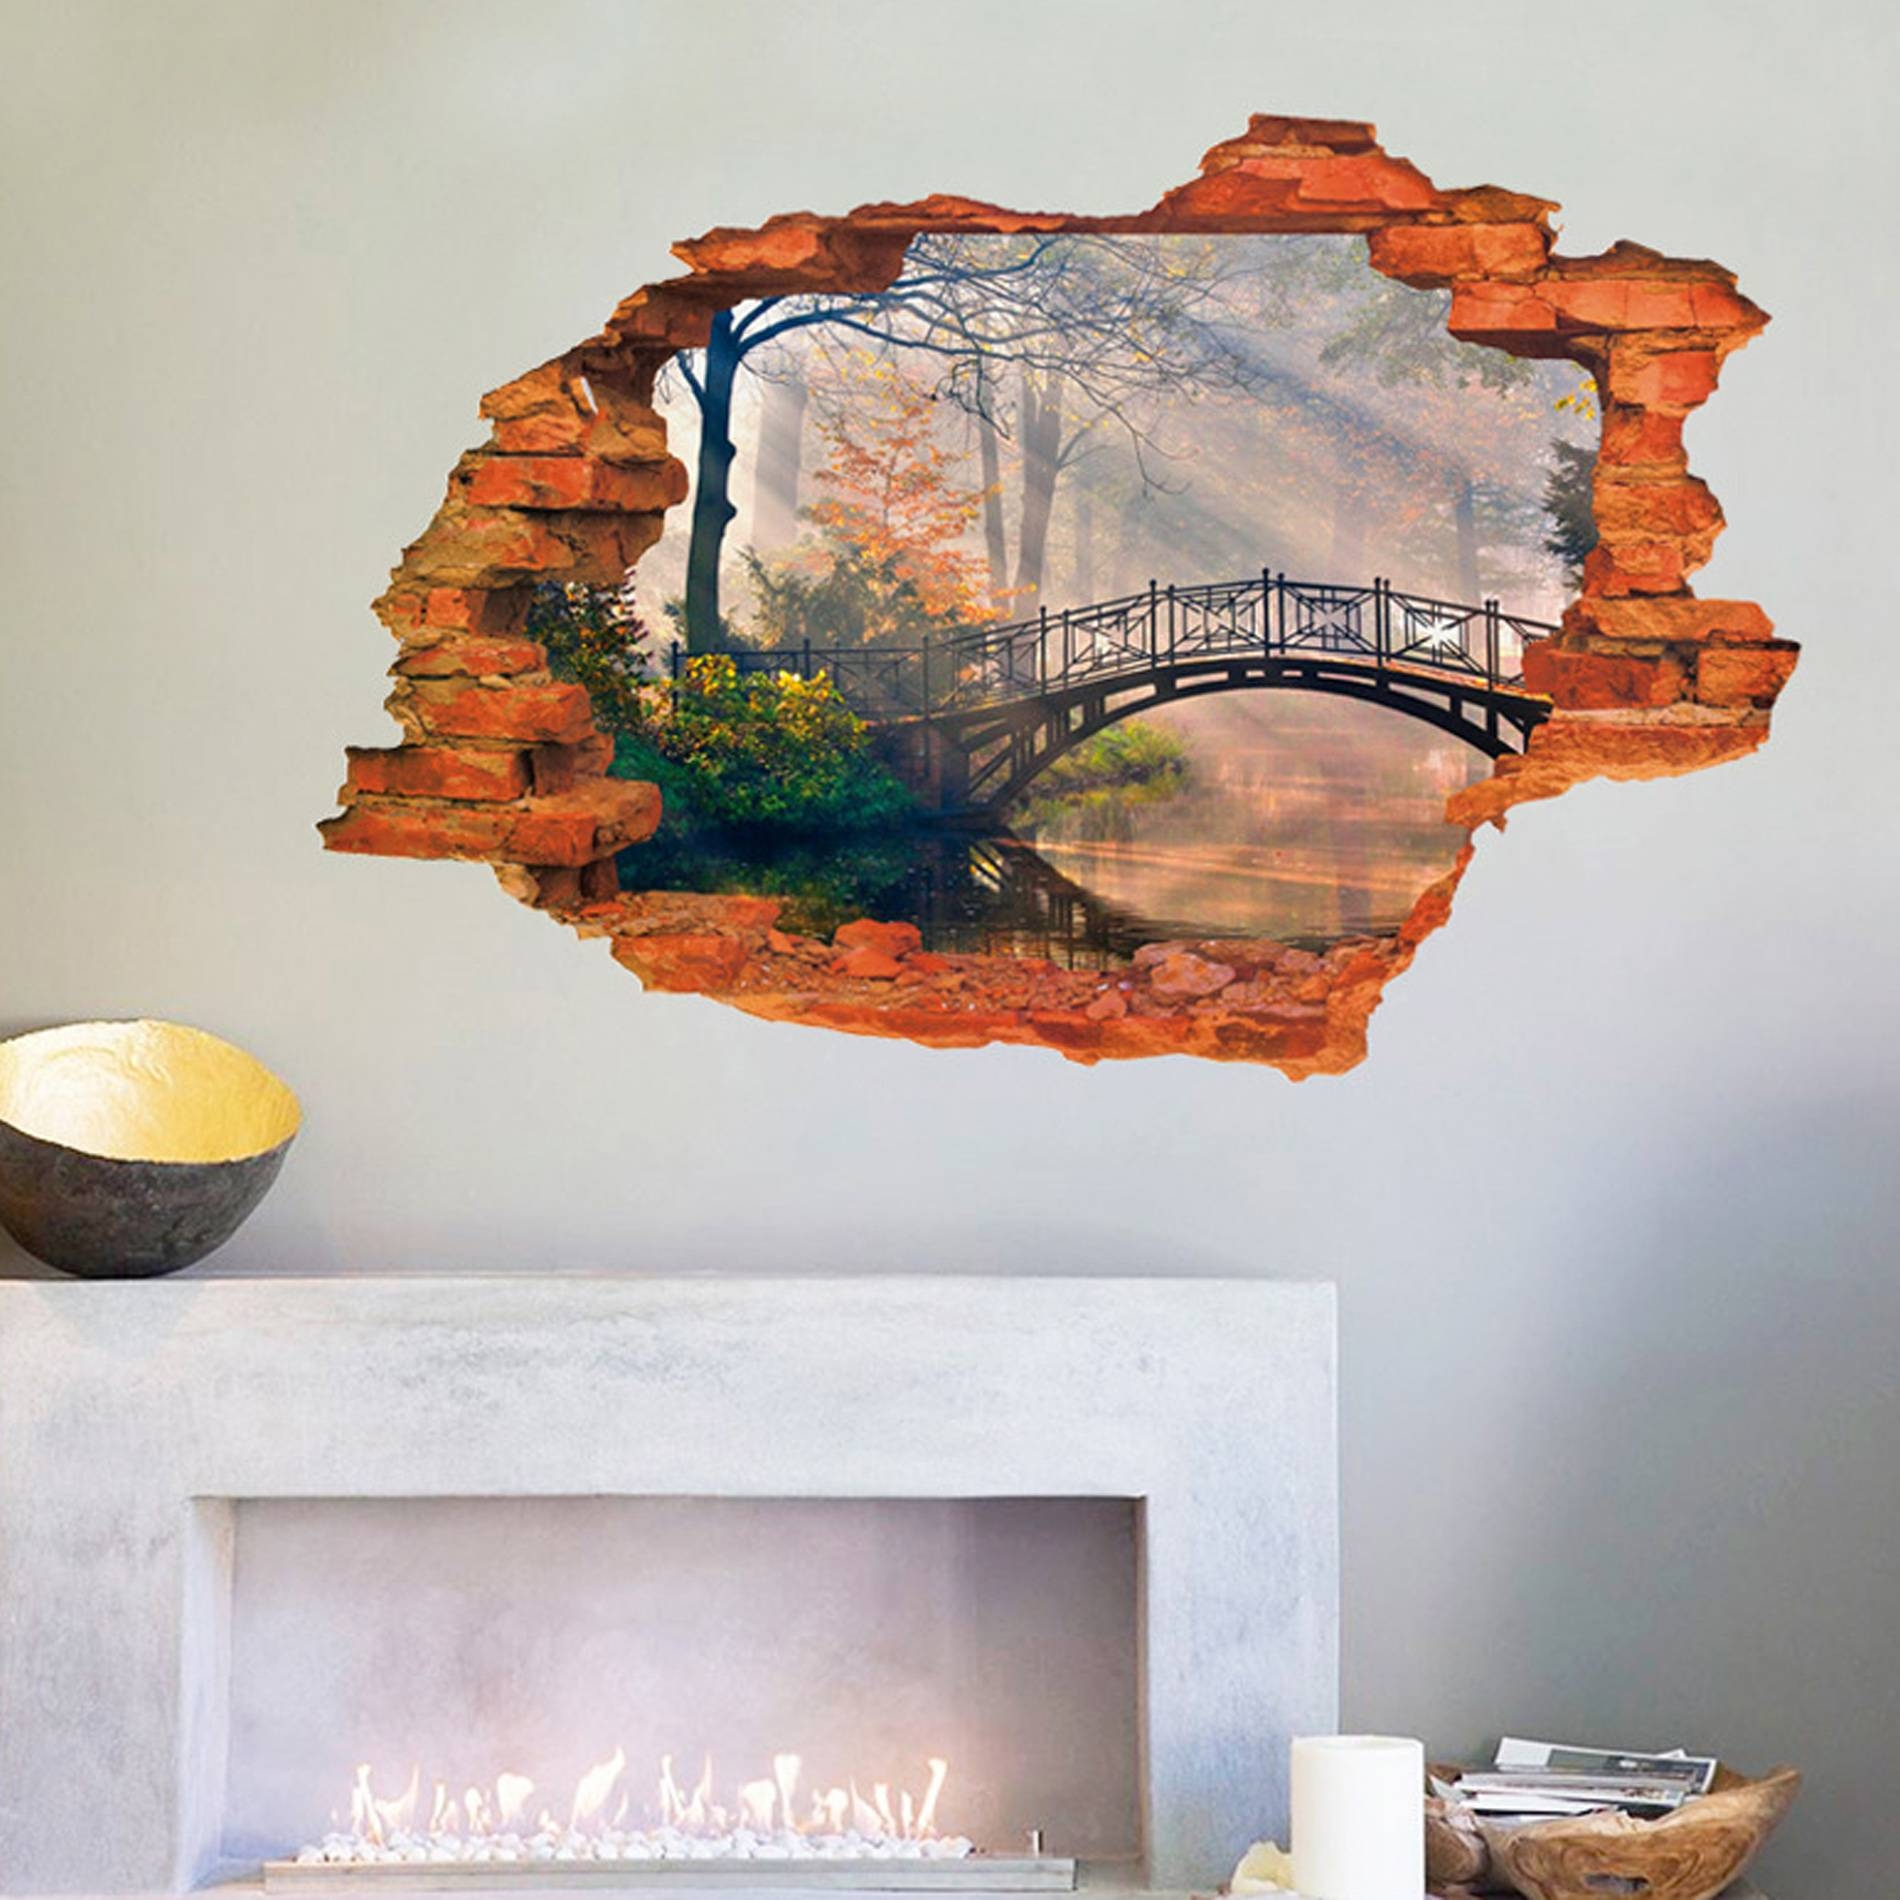 3D Broken Wall Removable Wall Sticker Art Decal Living Room Decor Throughout Latest 3D Wall Art For Living Room (Gallery 19 of 20)